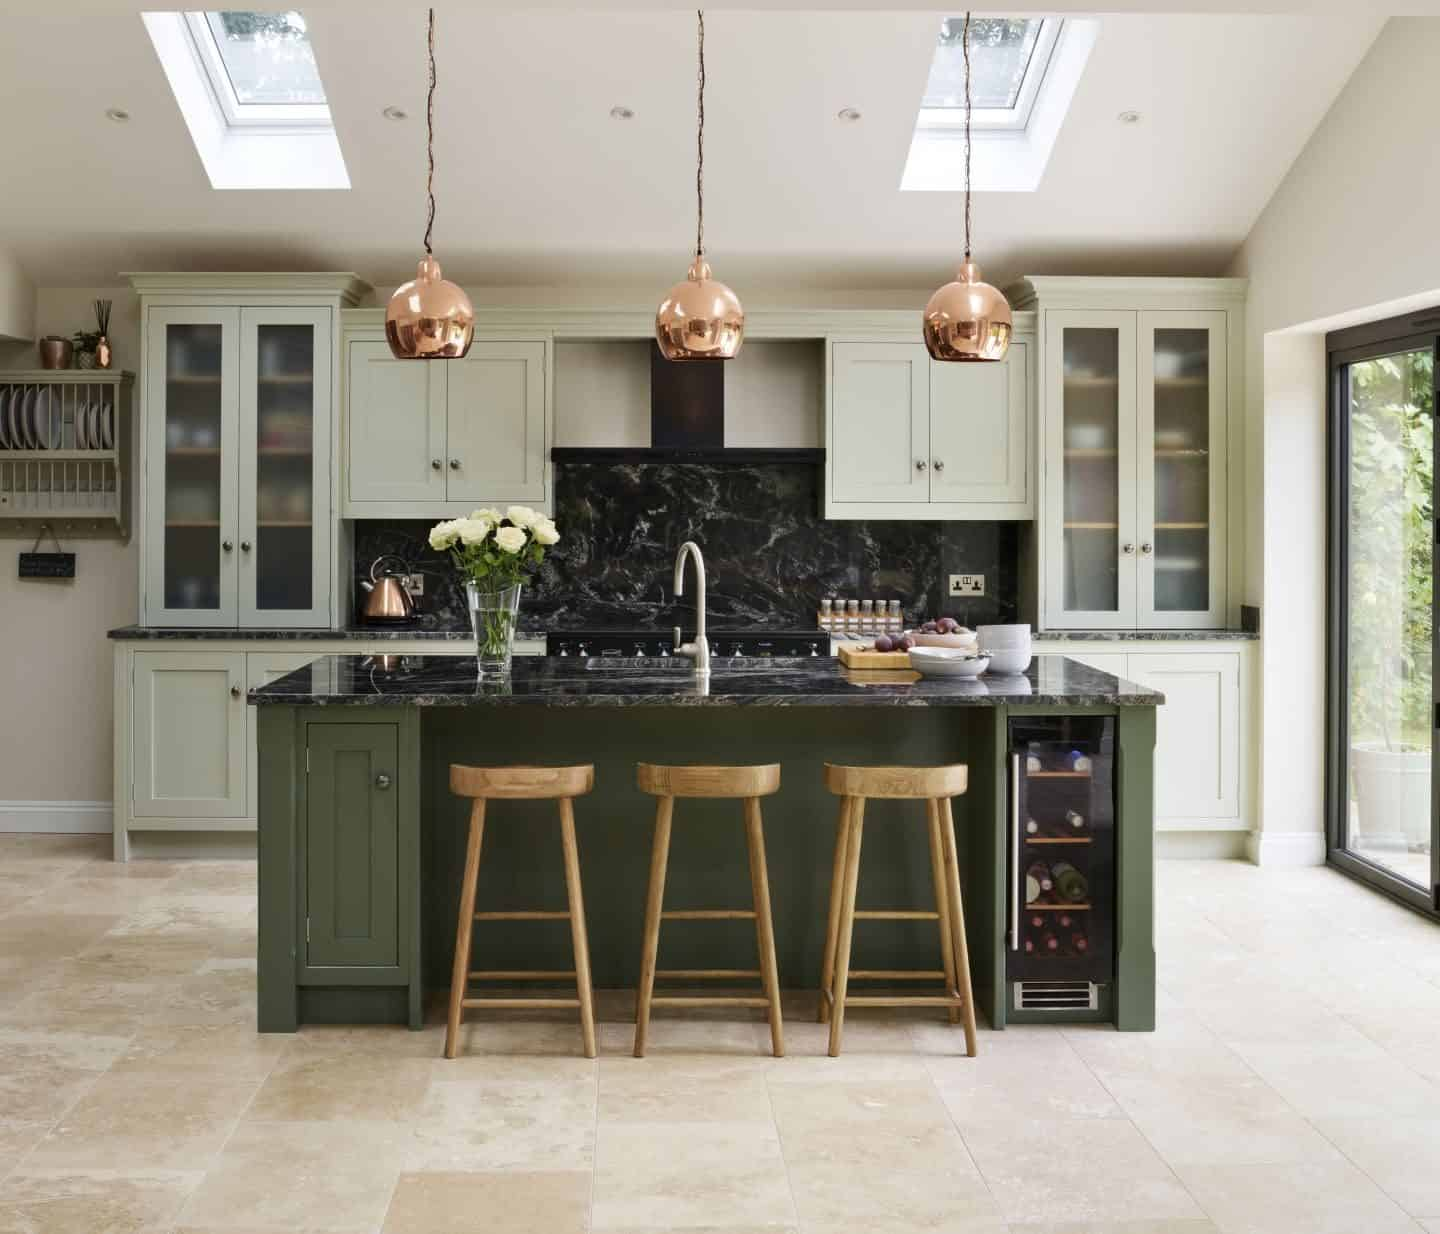 This Canterbury inspired kitchen by Davonport is hand-painted using Mizzle and Green Smoke, both Farrow & Ball, to introduce an organic, natural feel to the space.